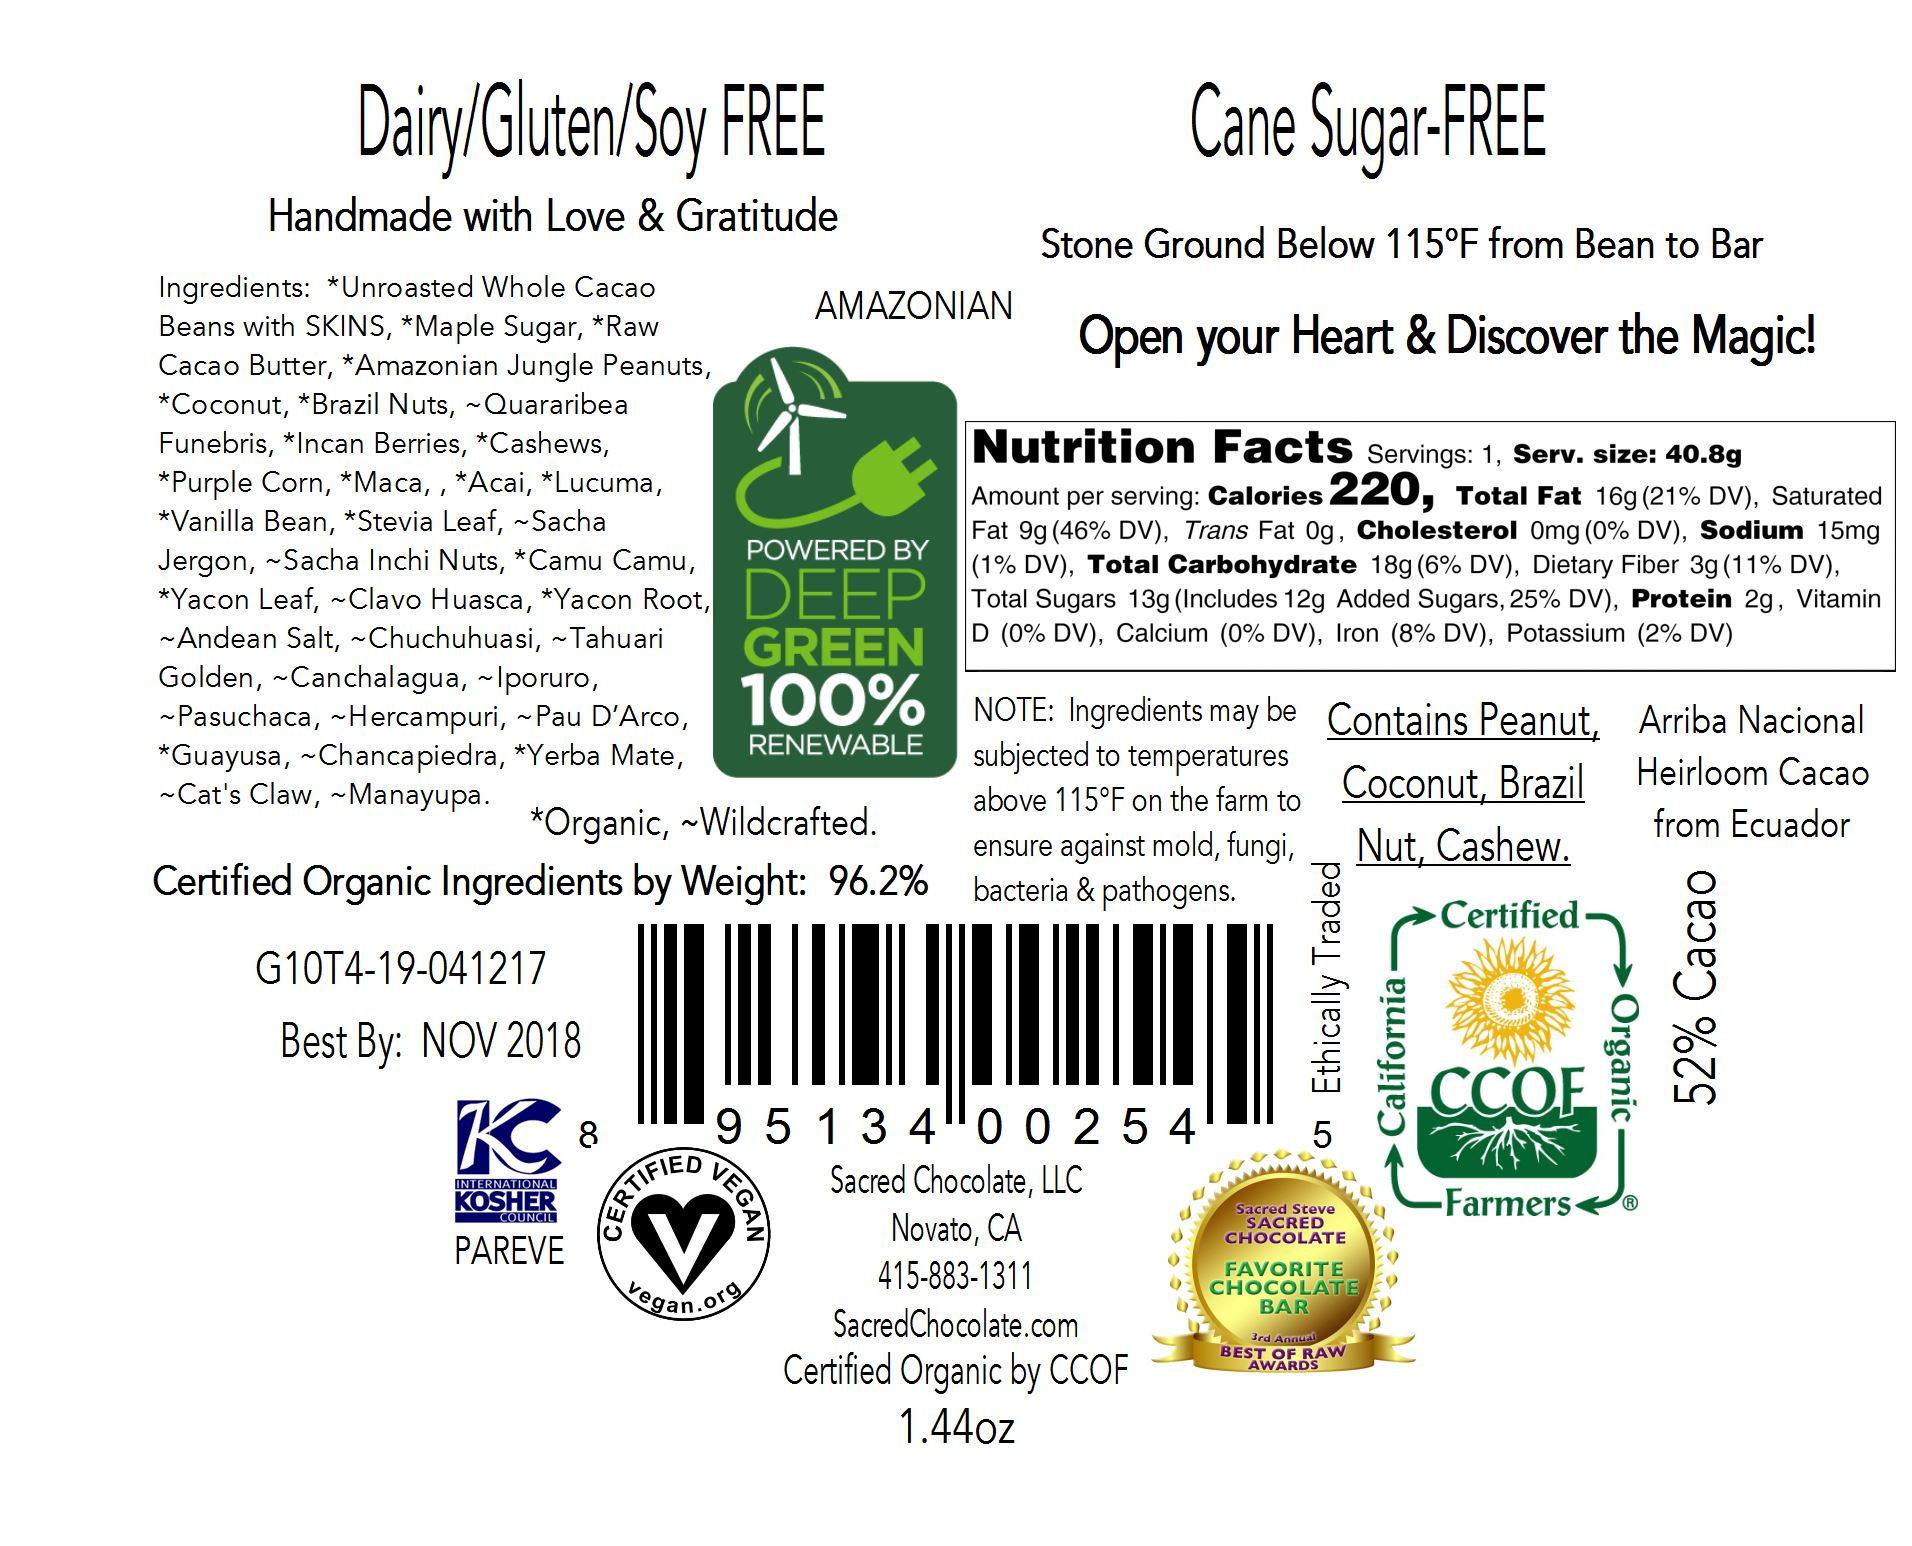 Amazonian 1.44oz Heart Bar - Back Label